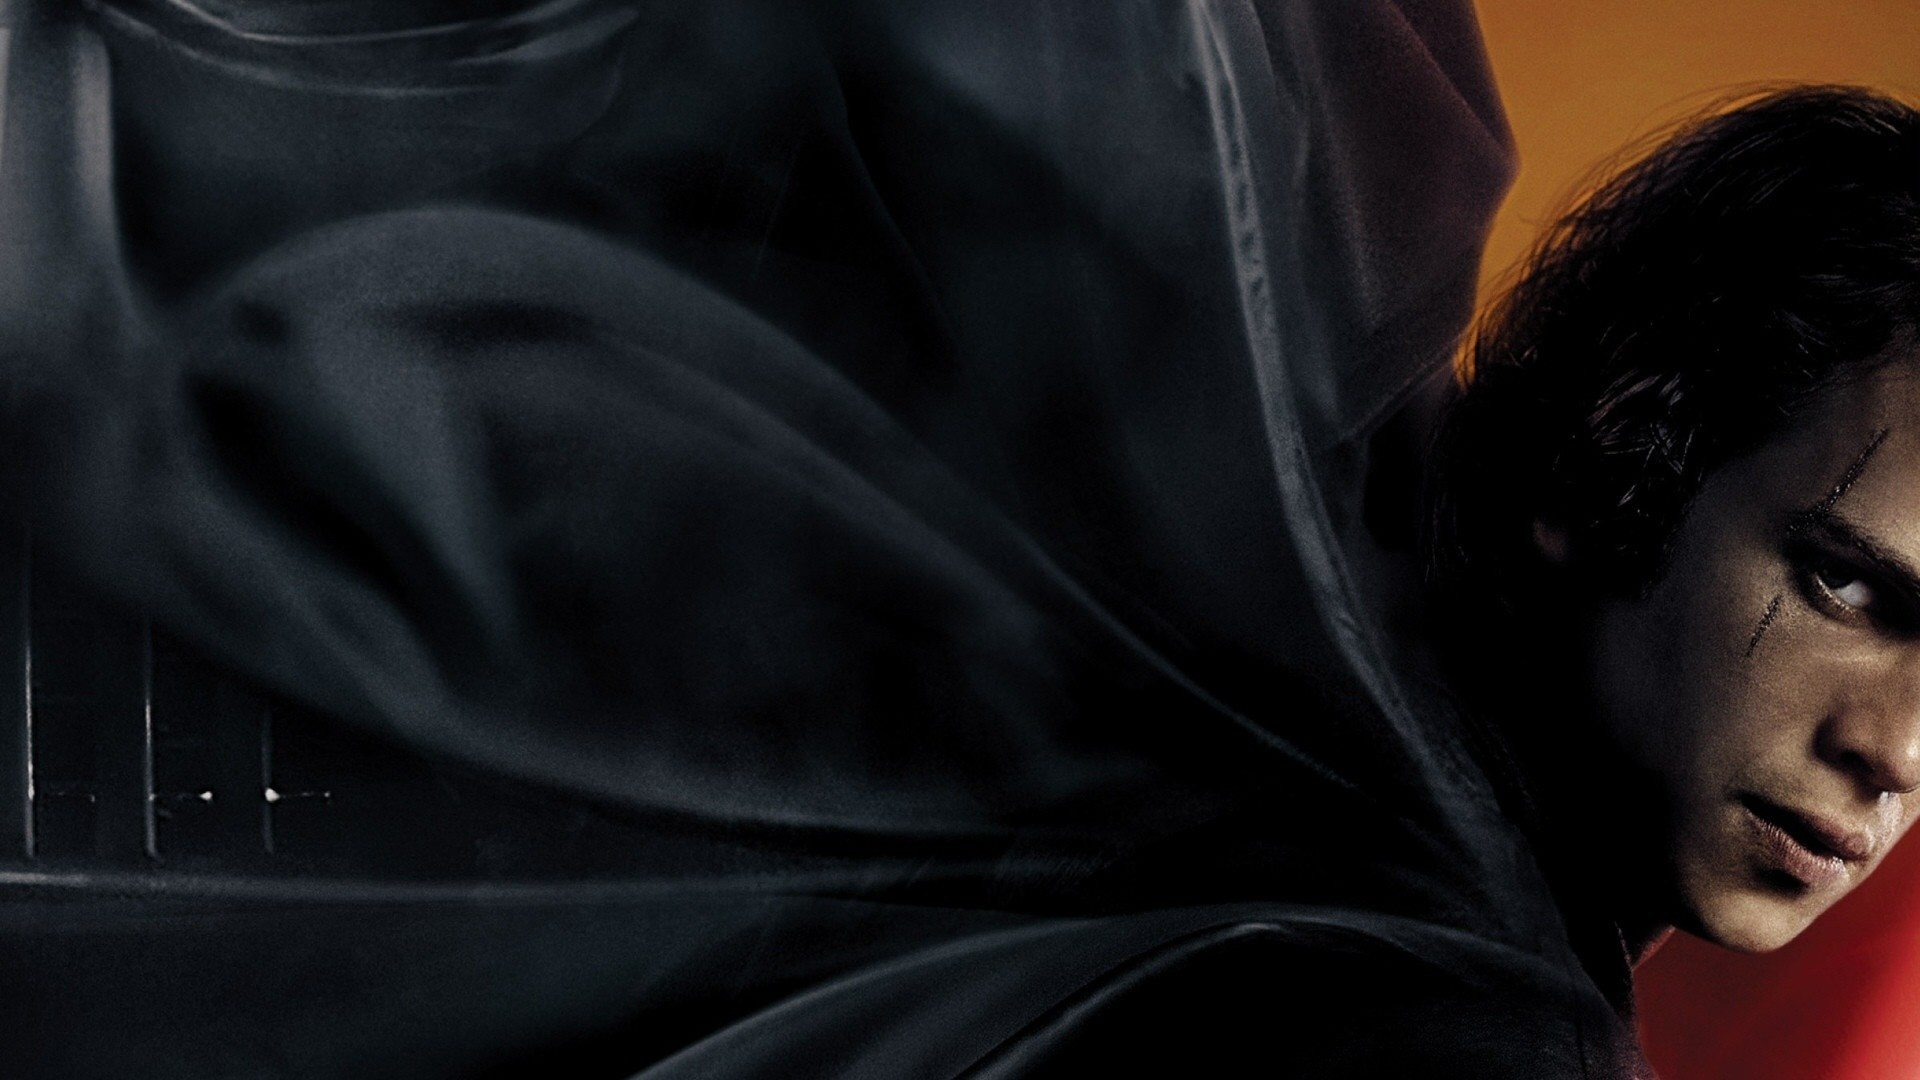 Star Wars: Episode III – Revenge of the Sith Wallpapers, Poster, Movie .